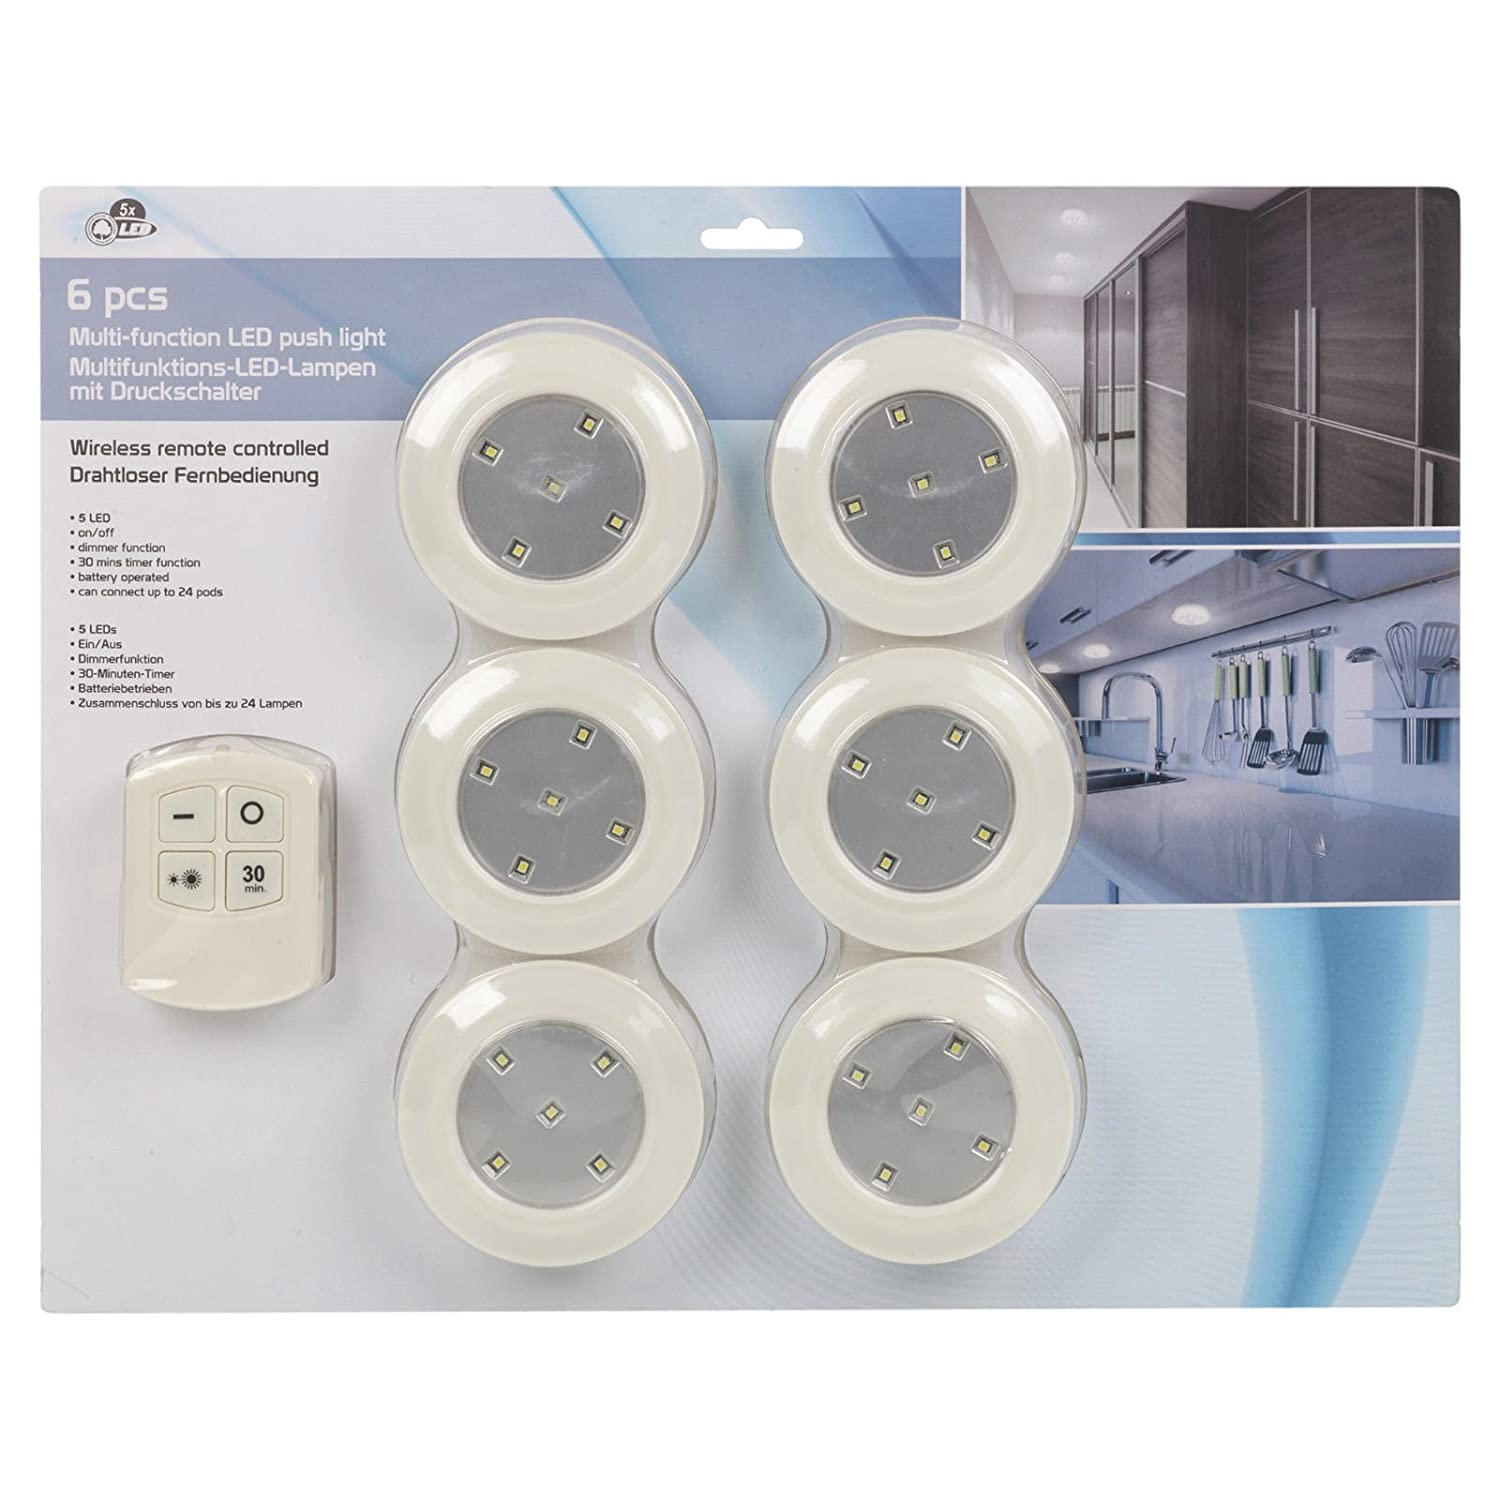 6 x remote control wall ceiling led push lights kitchen bathroom 6 x remote control wall ceiling led push lights kitchen bathroom cabinet shed amazon kitchen home parisarafo Images